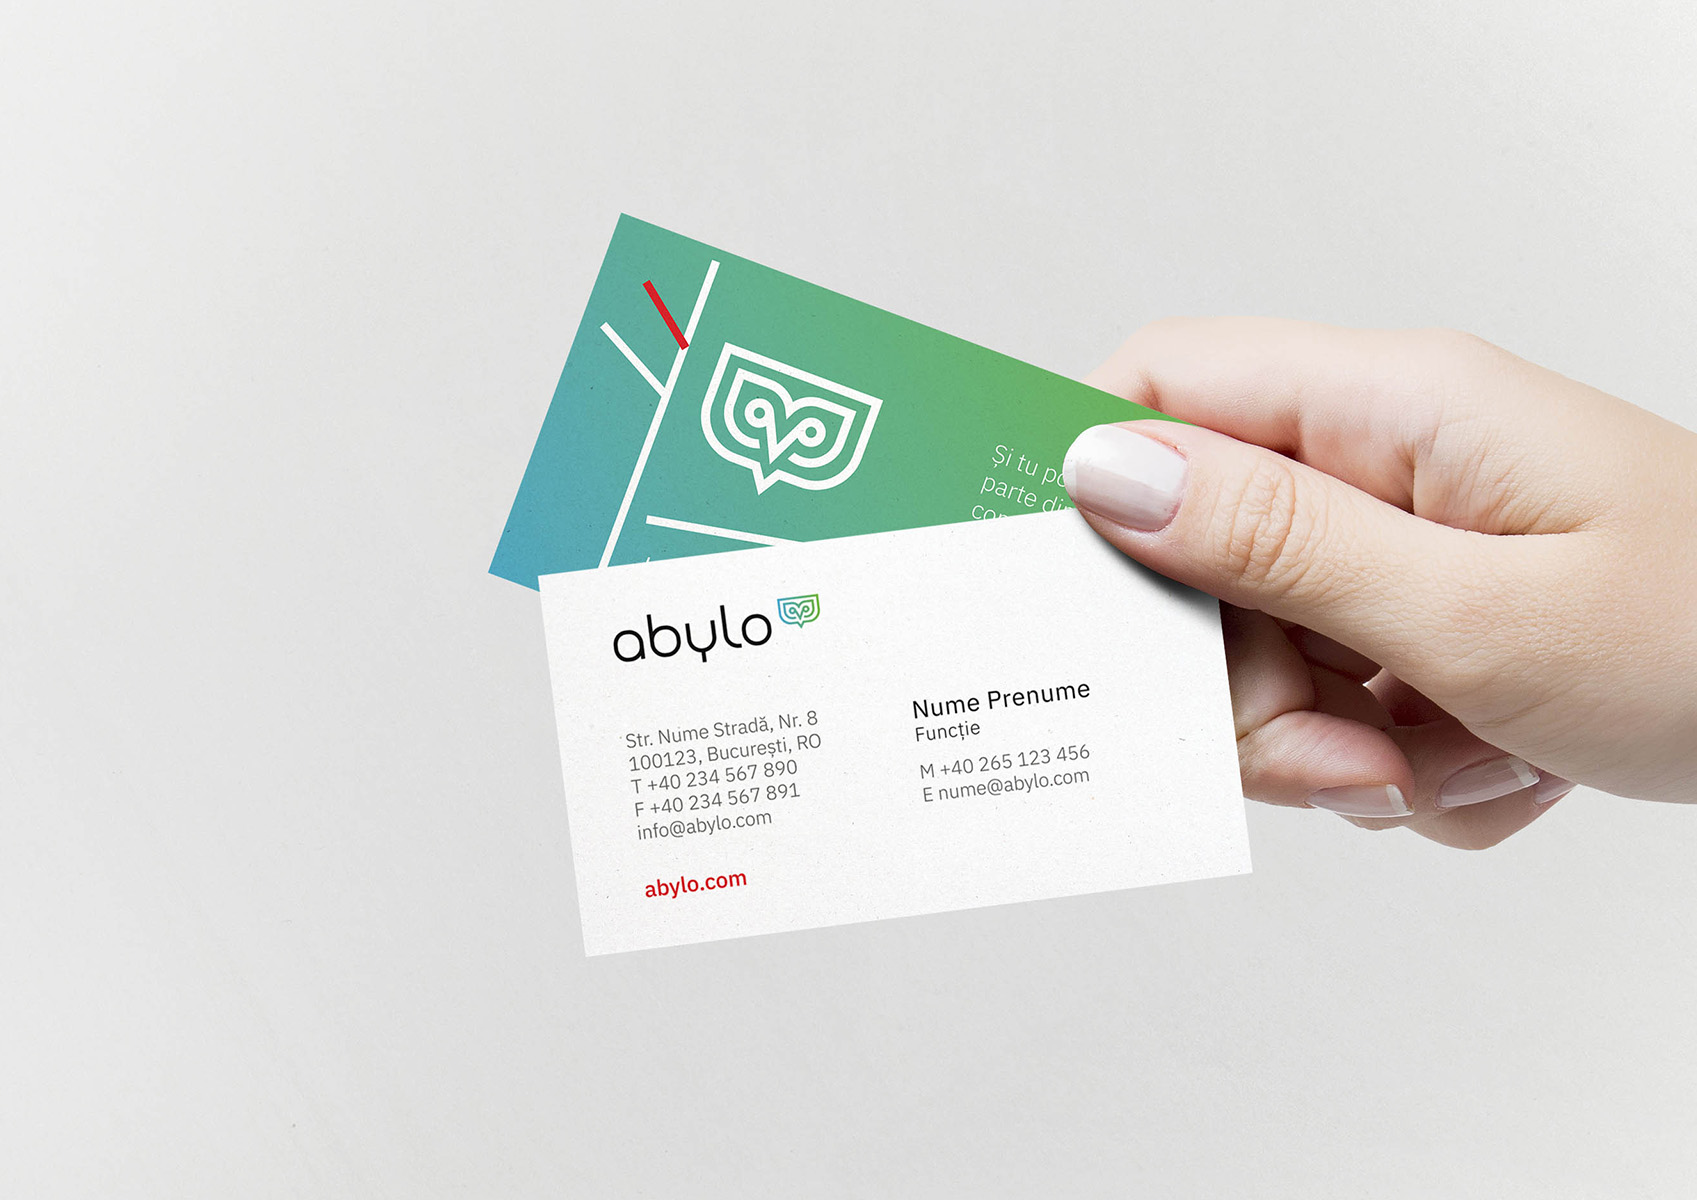 abylo portofoliu inoveo Business Card